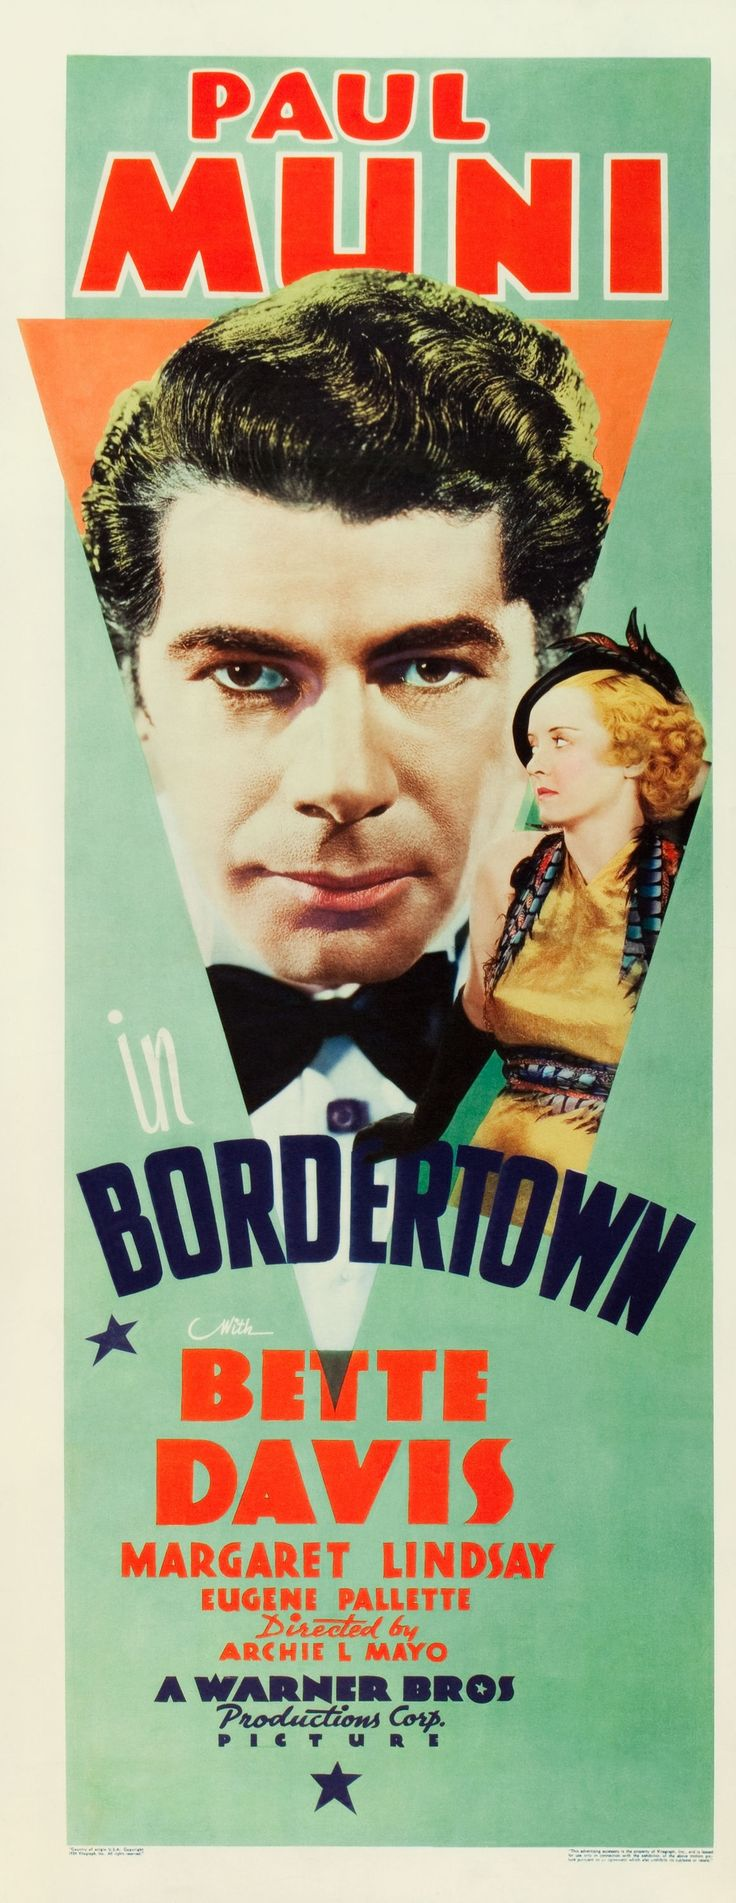 Best Film Posters Bordertown 1935 Paul Muni Bette Davis